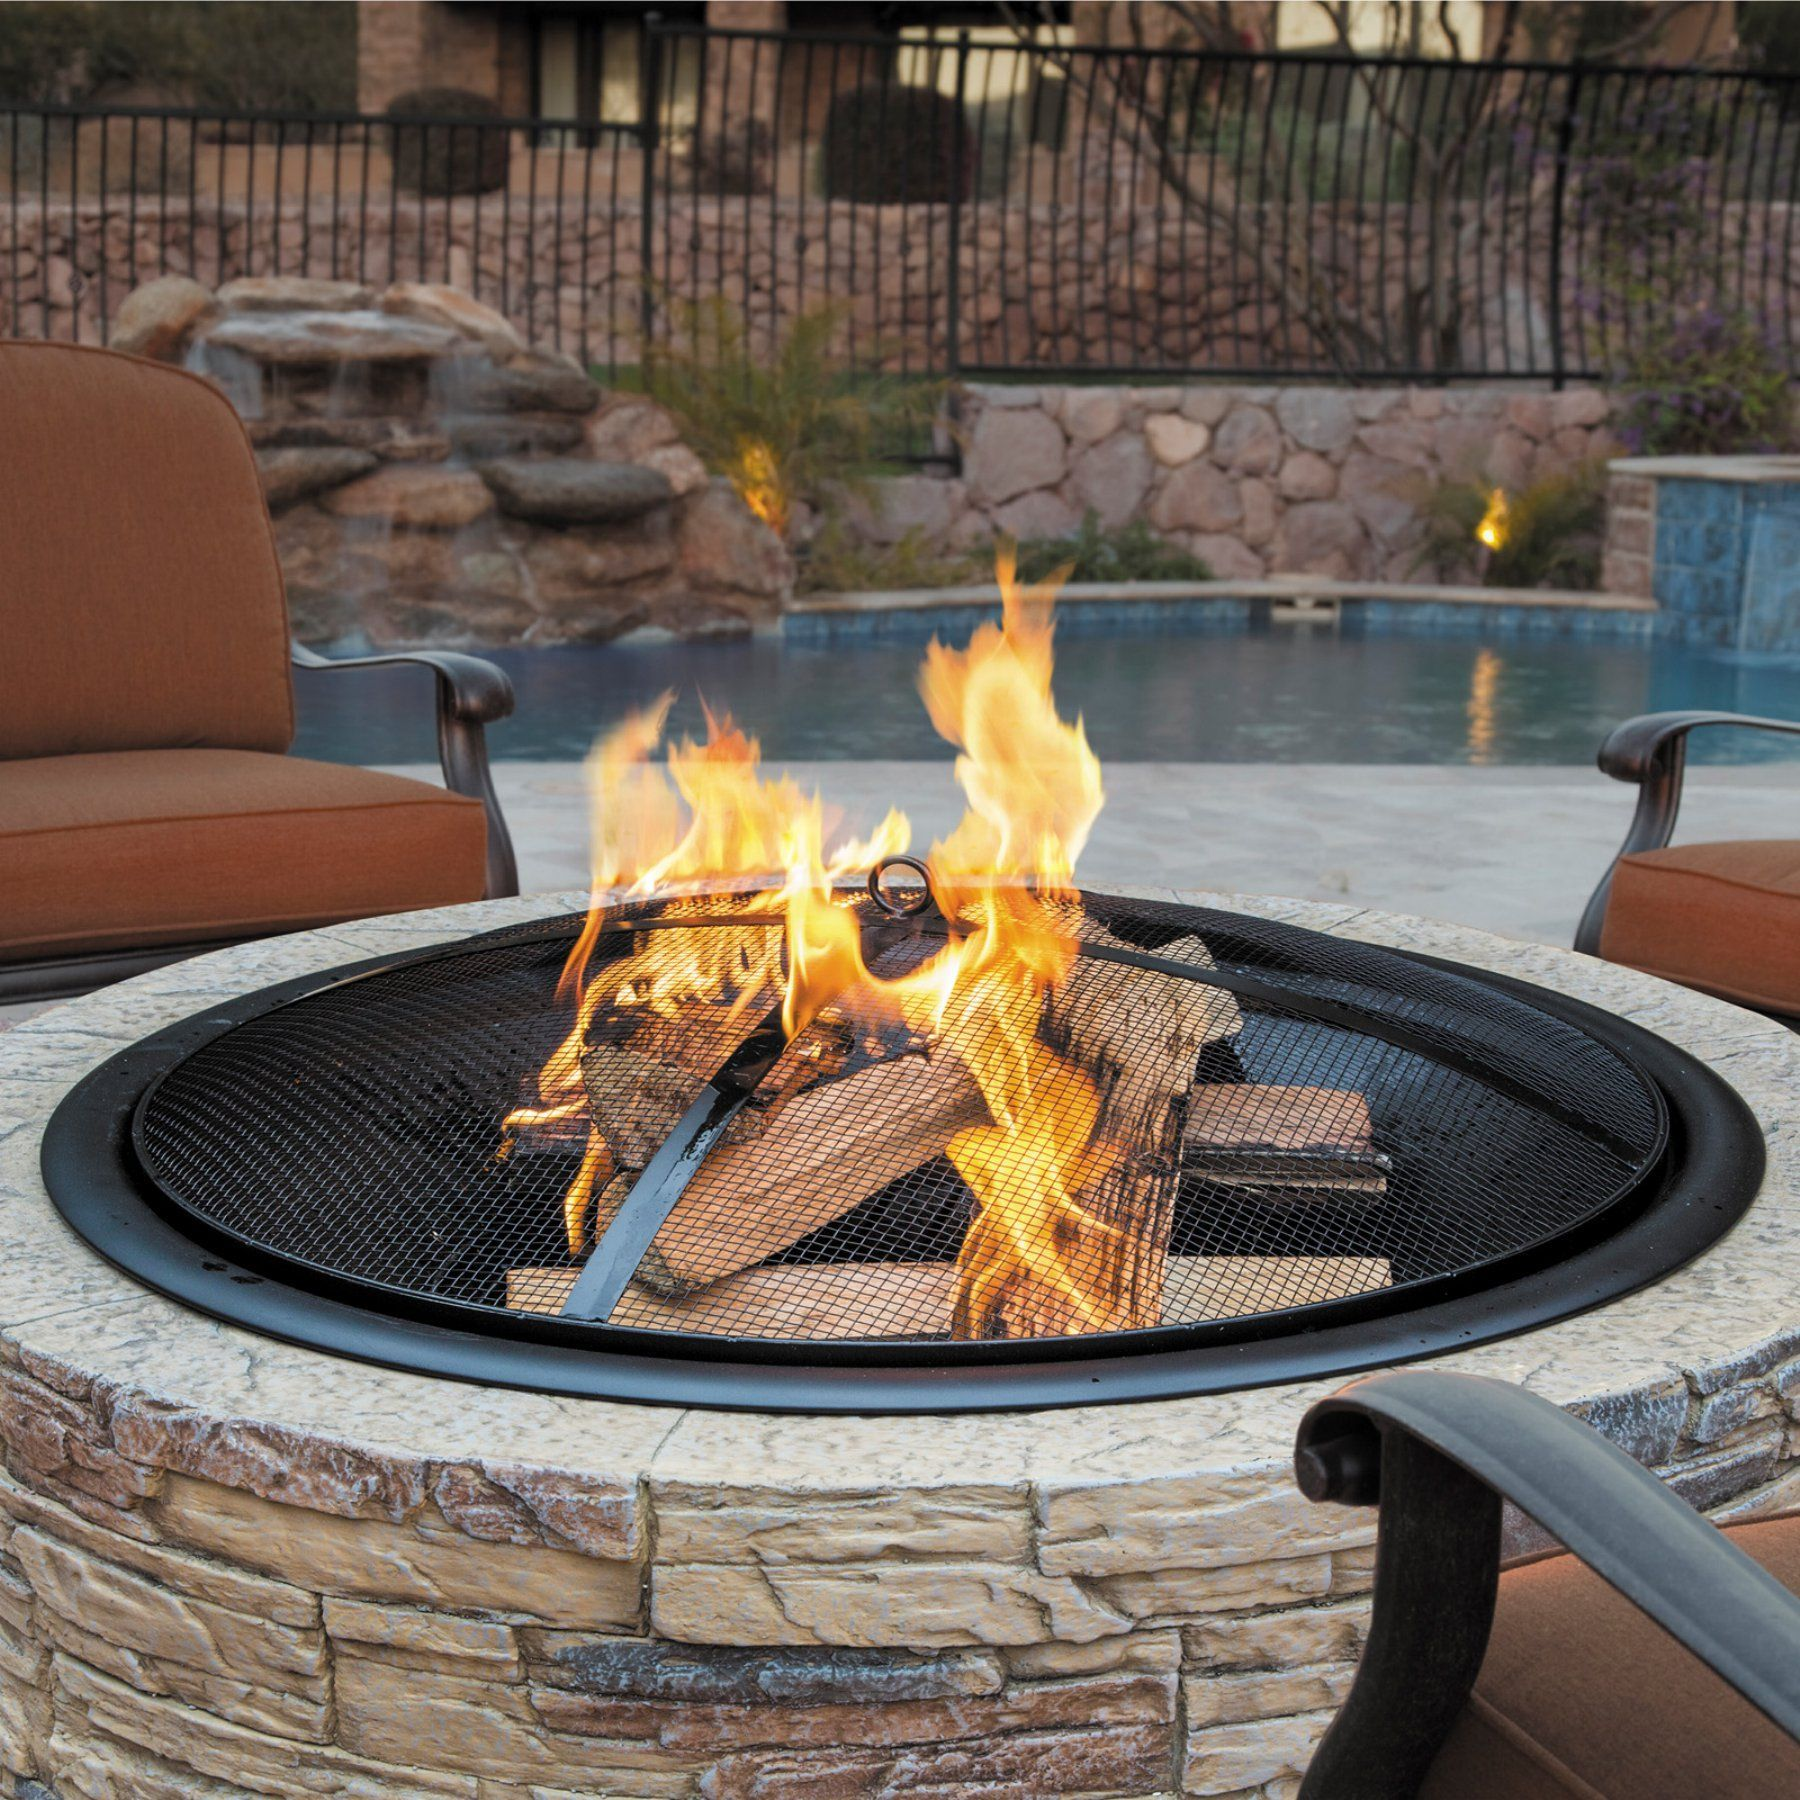 Sun Joe Classic Stone Cast Stone Fire Pit With Dome Screen And Poker Sjfp35 Stn Wood Burning Fire Pit Wood Fire Pit Fire Pit Backyard